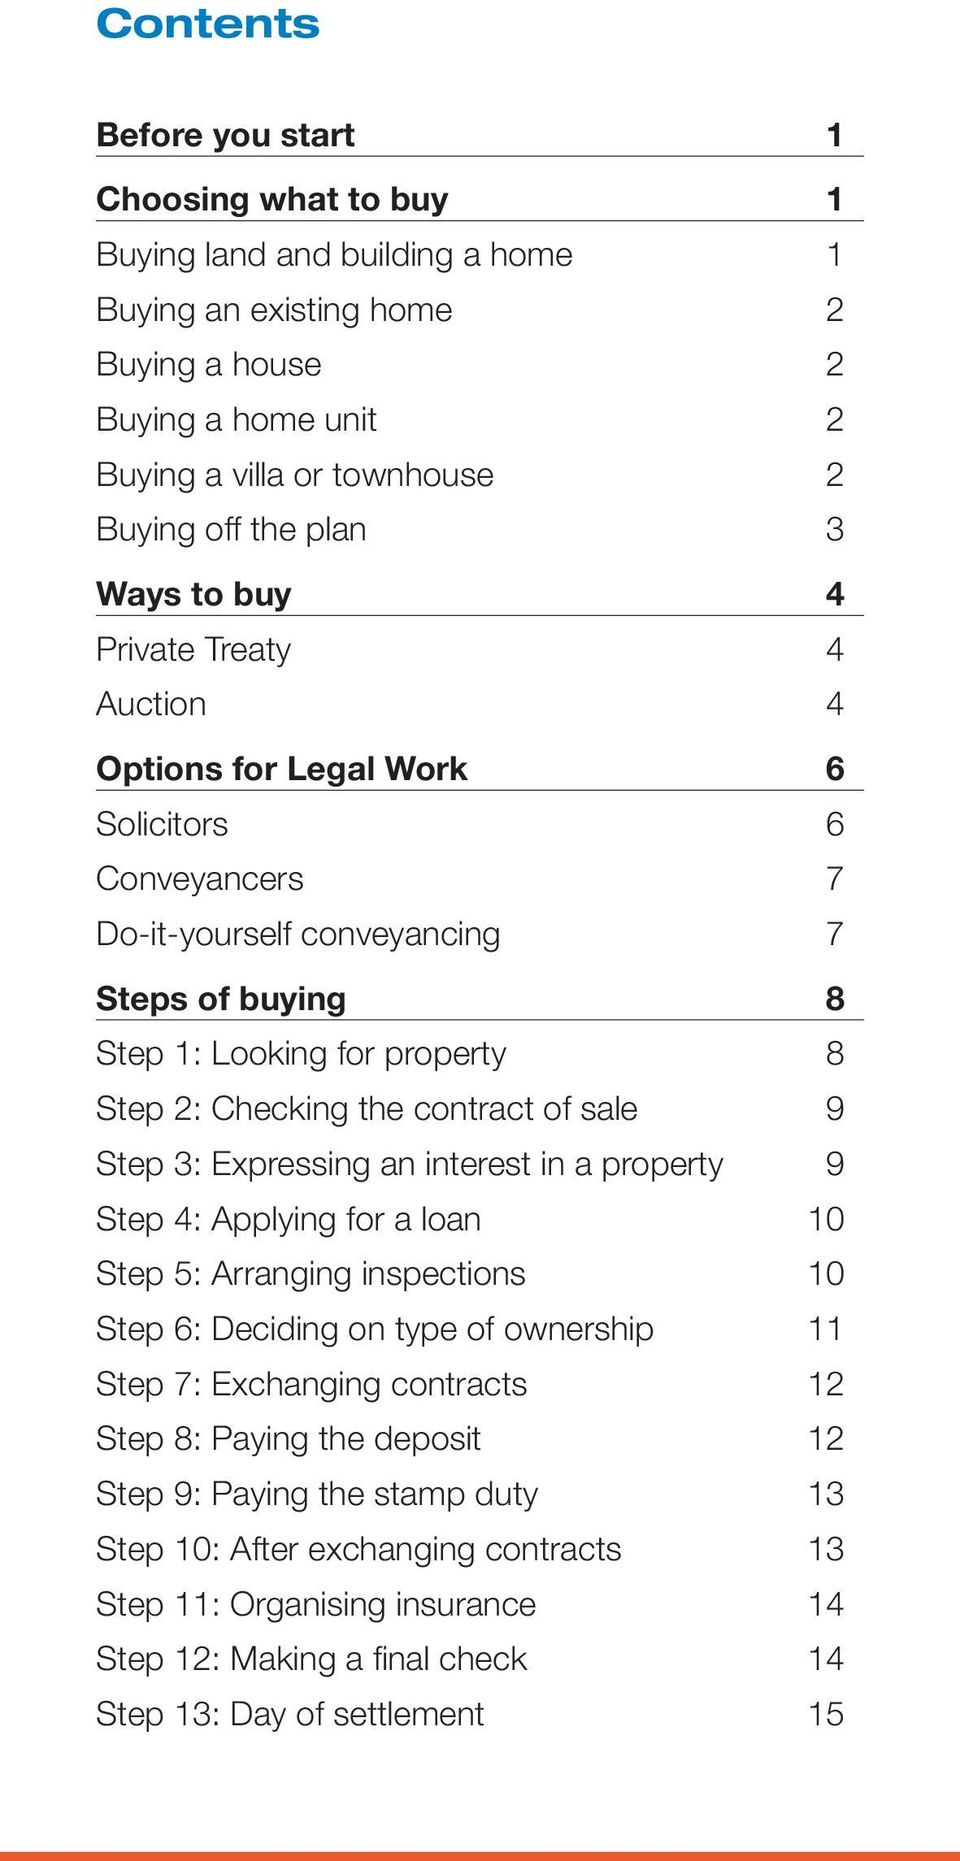 contract of sale 9 Step 3: Expressing an interest in a property 9 Step 4: Applying for a loan 10 Step 5: Arranging inspections 10 Step 6: Deciding on type of ownership 11 Step 7: Exchanging contracts